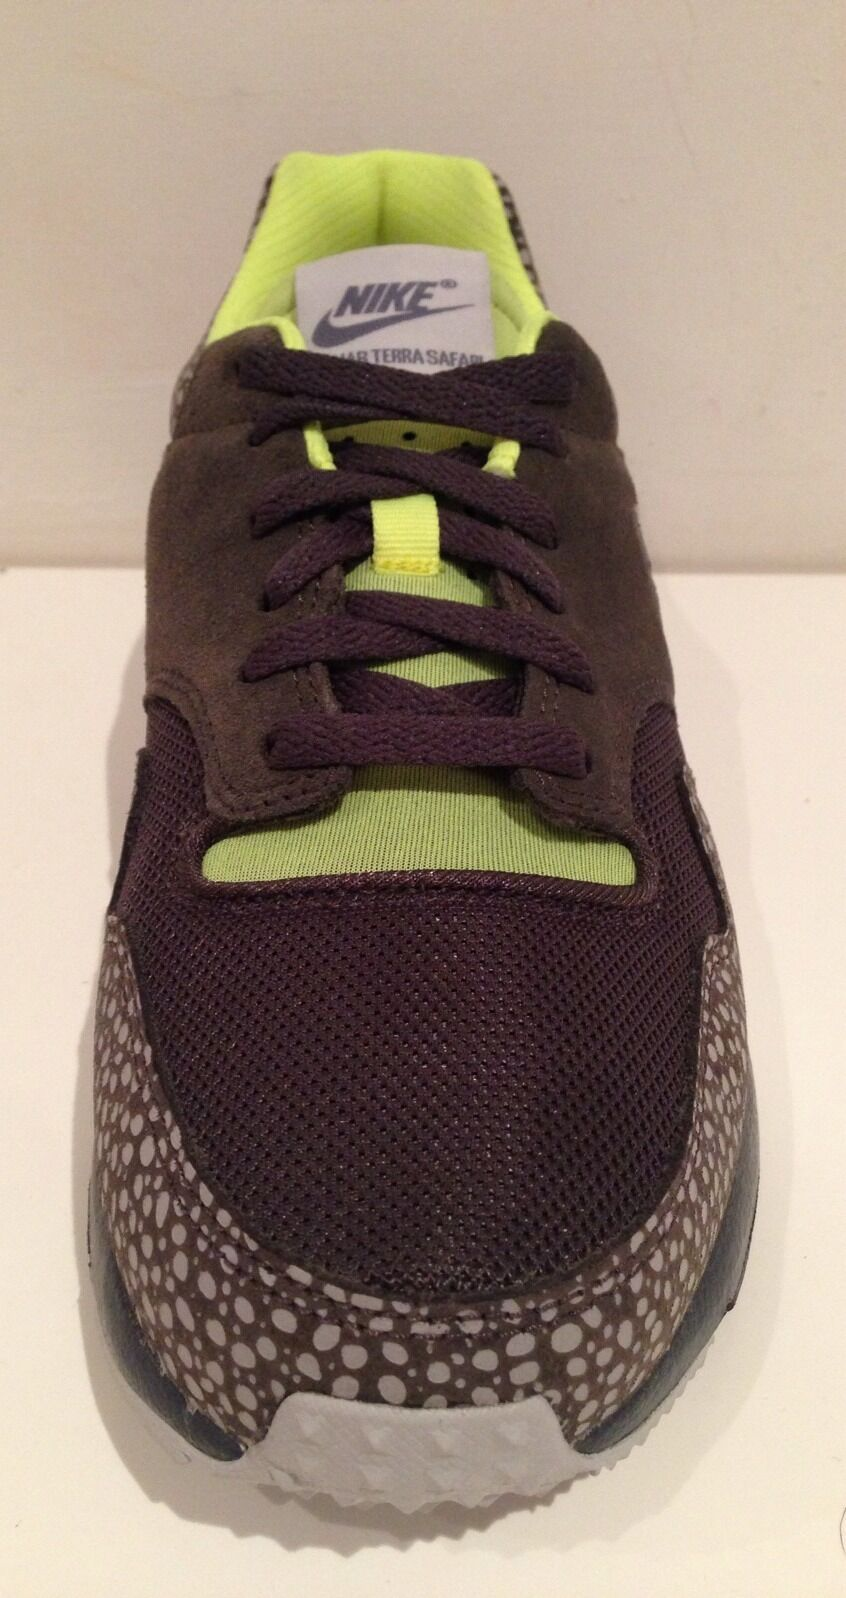 Nike Lunar Terra Safari Taille Taille Taille 9 (UK) EntièreHommes t neuf dans sa boîte | Le Moins Cher